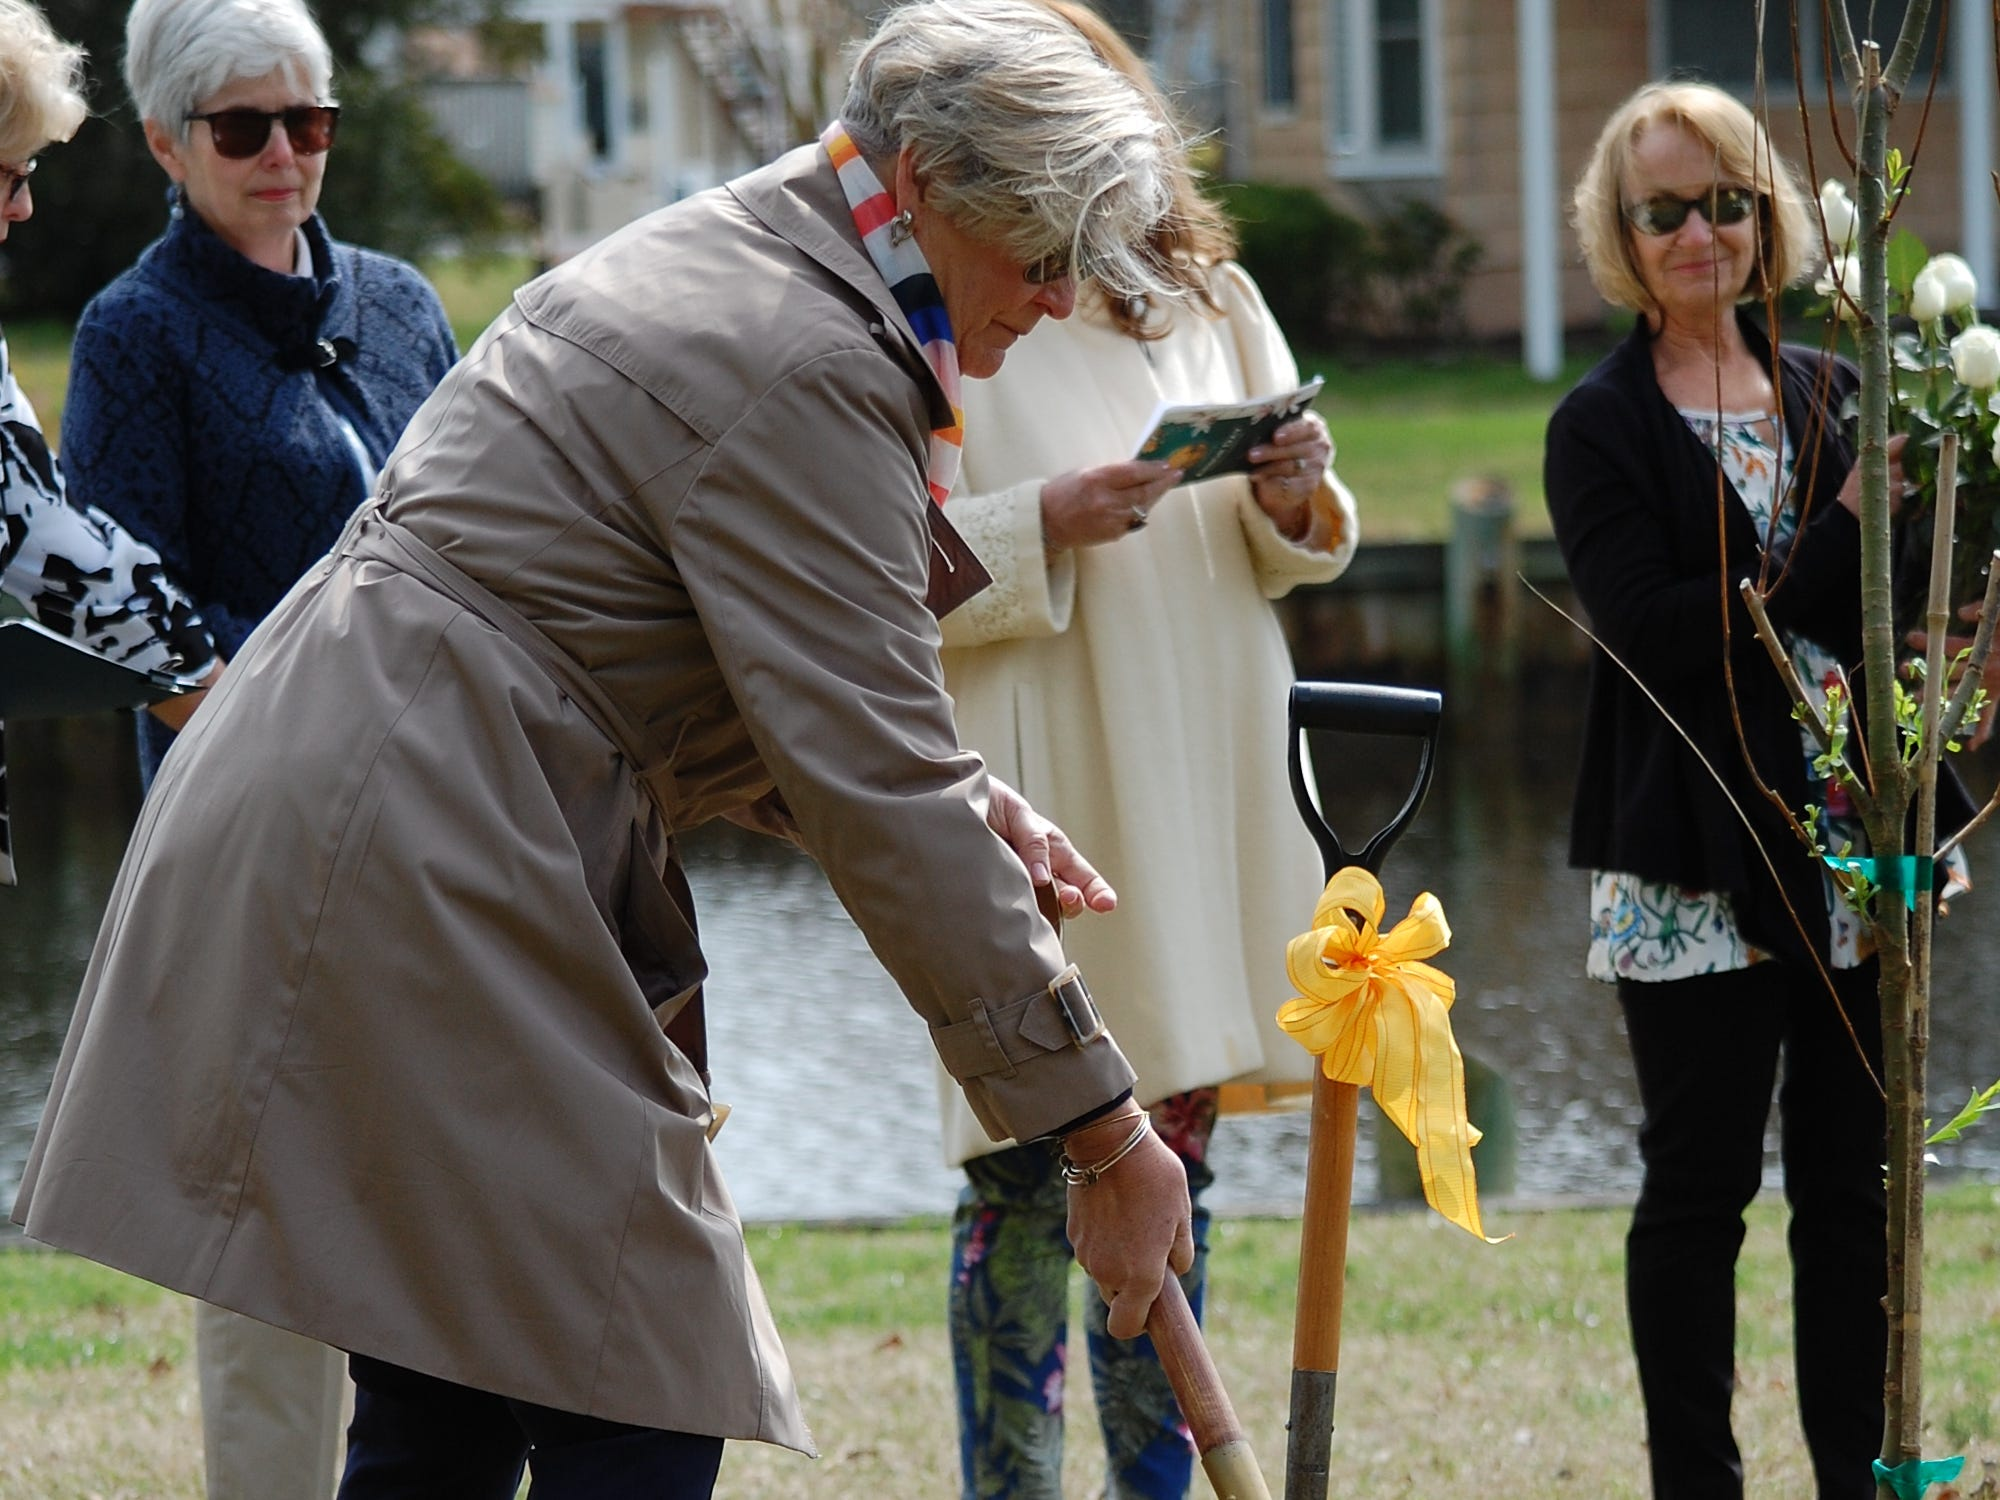 Ocean Pines Garden Club President Linda Baker adds a shovel of soil to a newly planted tree in Pintail Park in memory of a loved one during the memorial ceremony on April 11.